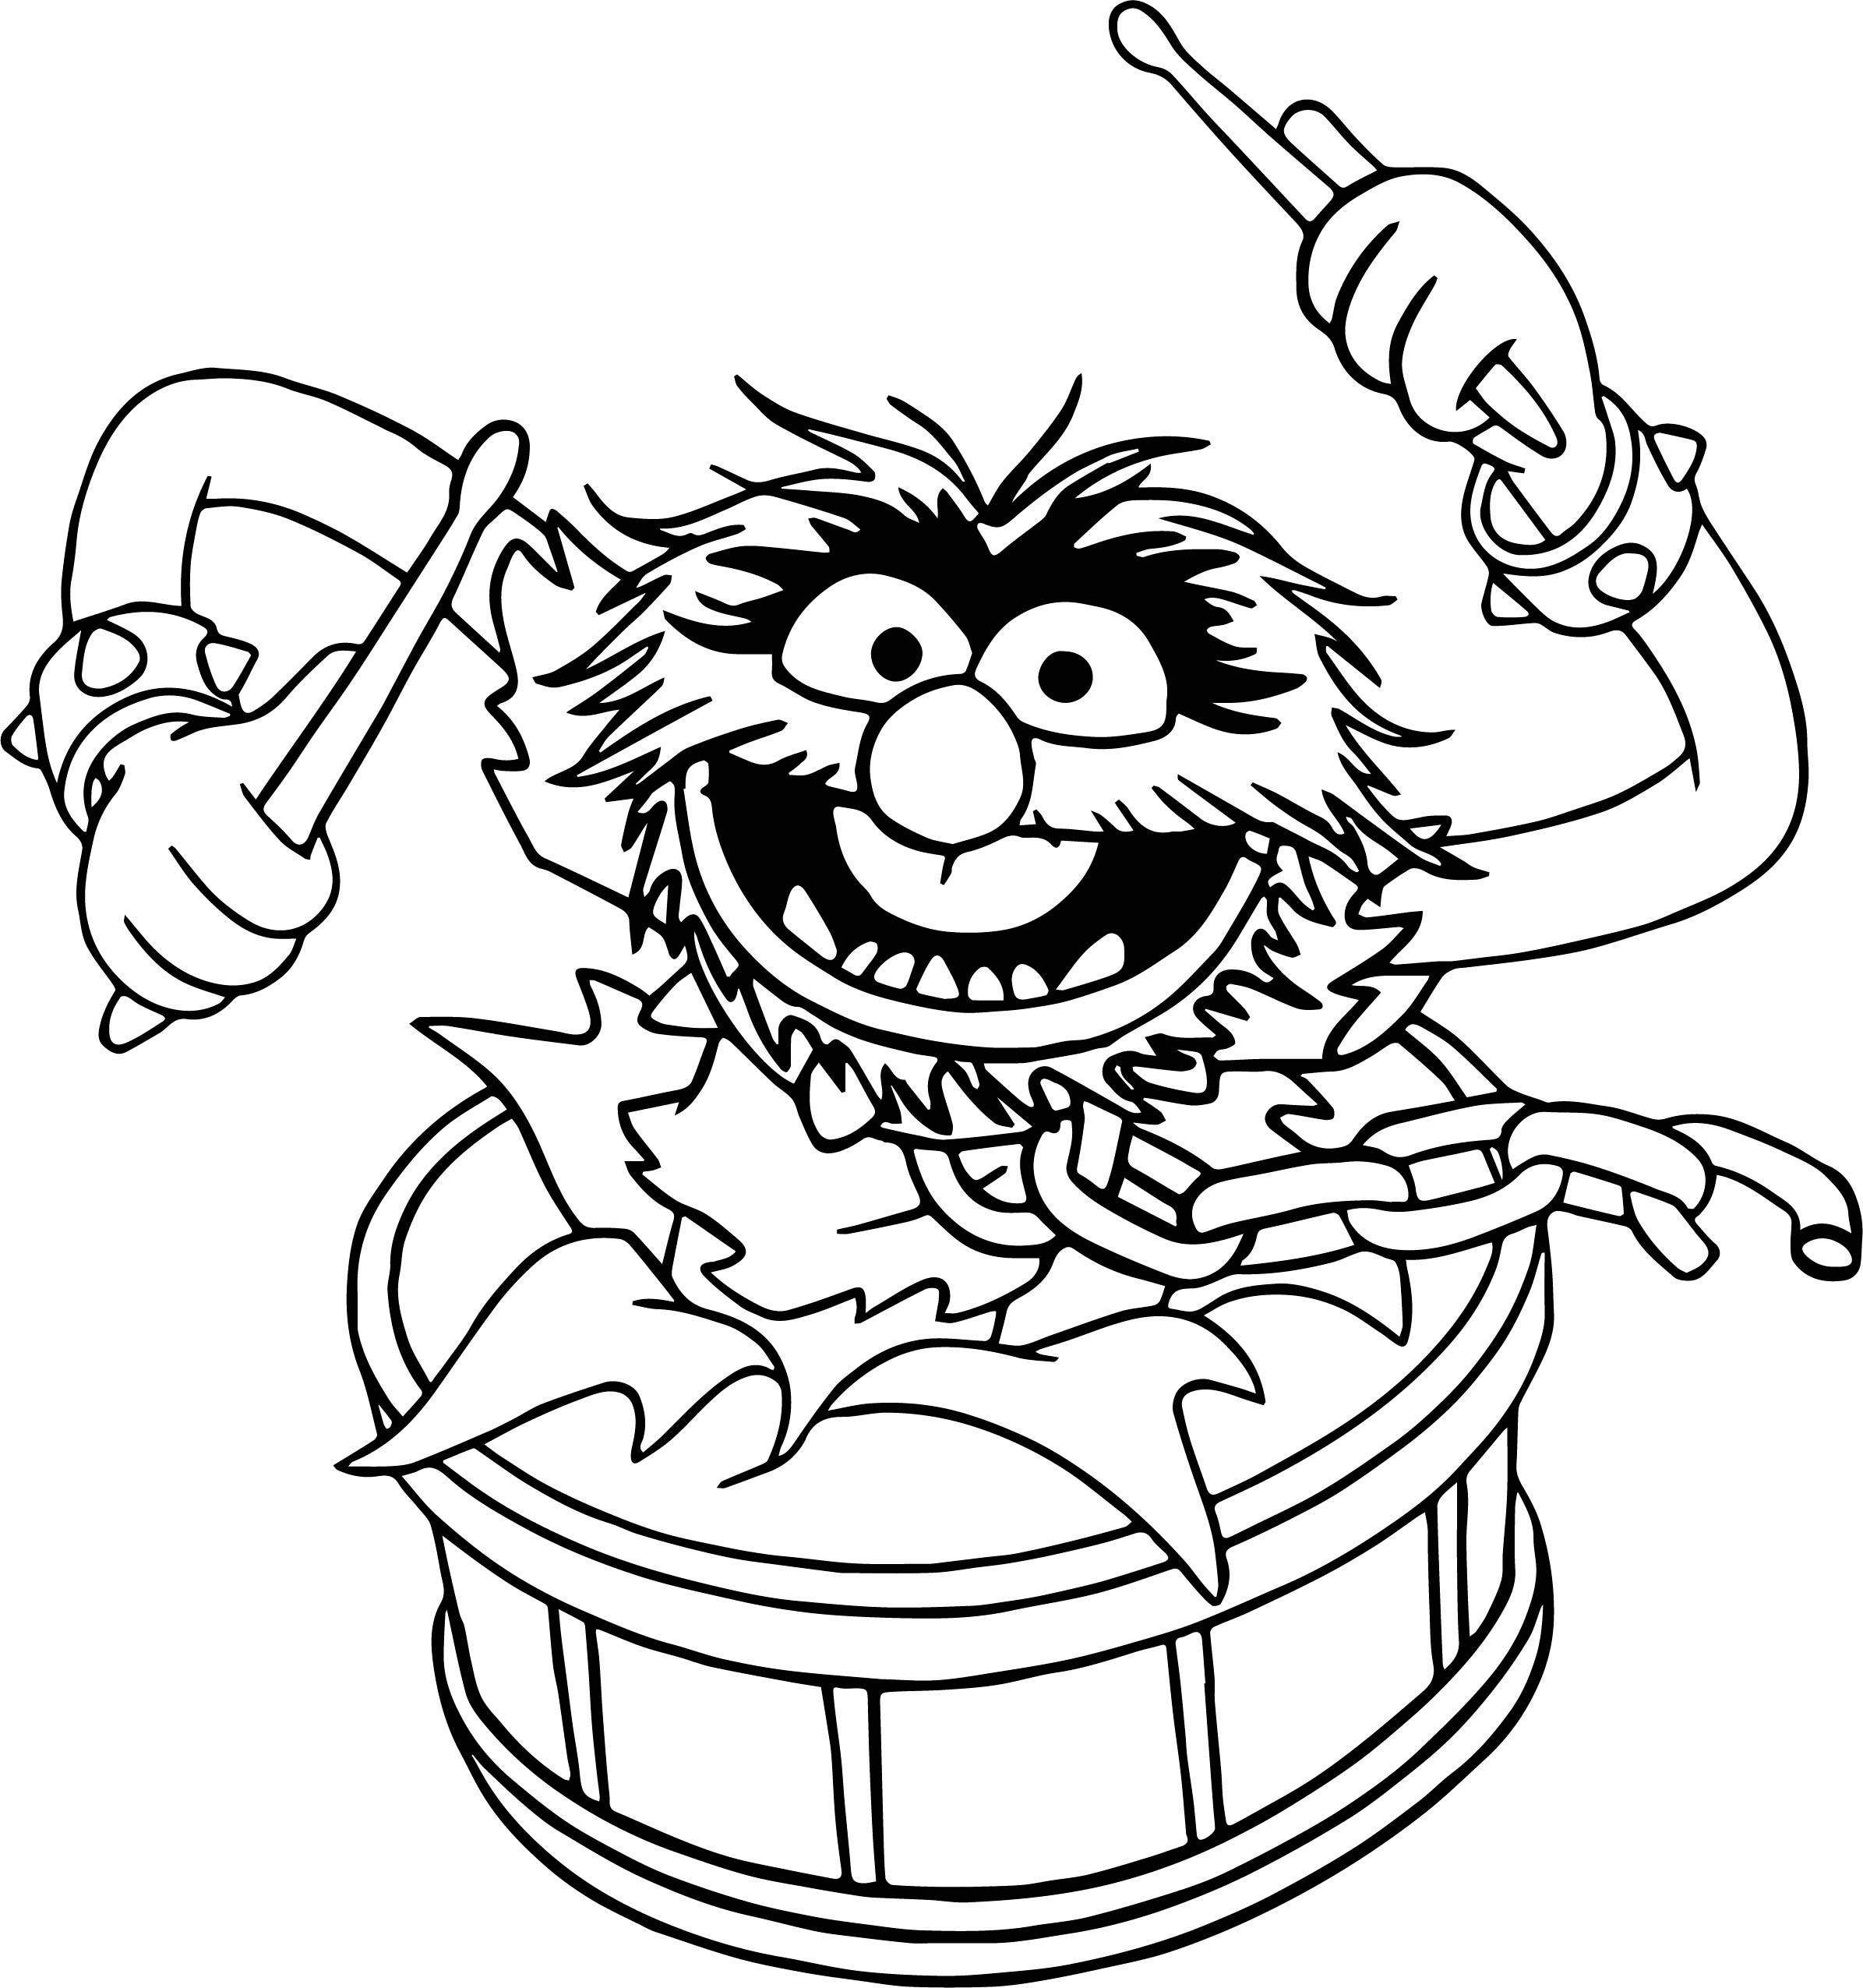 The muppets animal song coloring pages for Muppet babies coloring pages